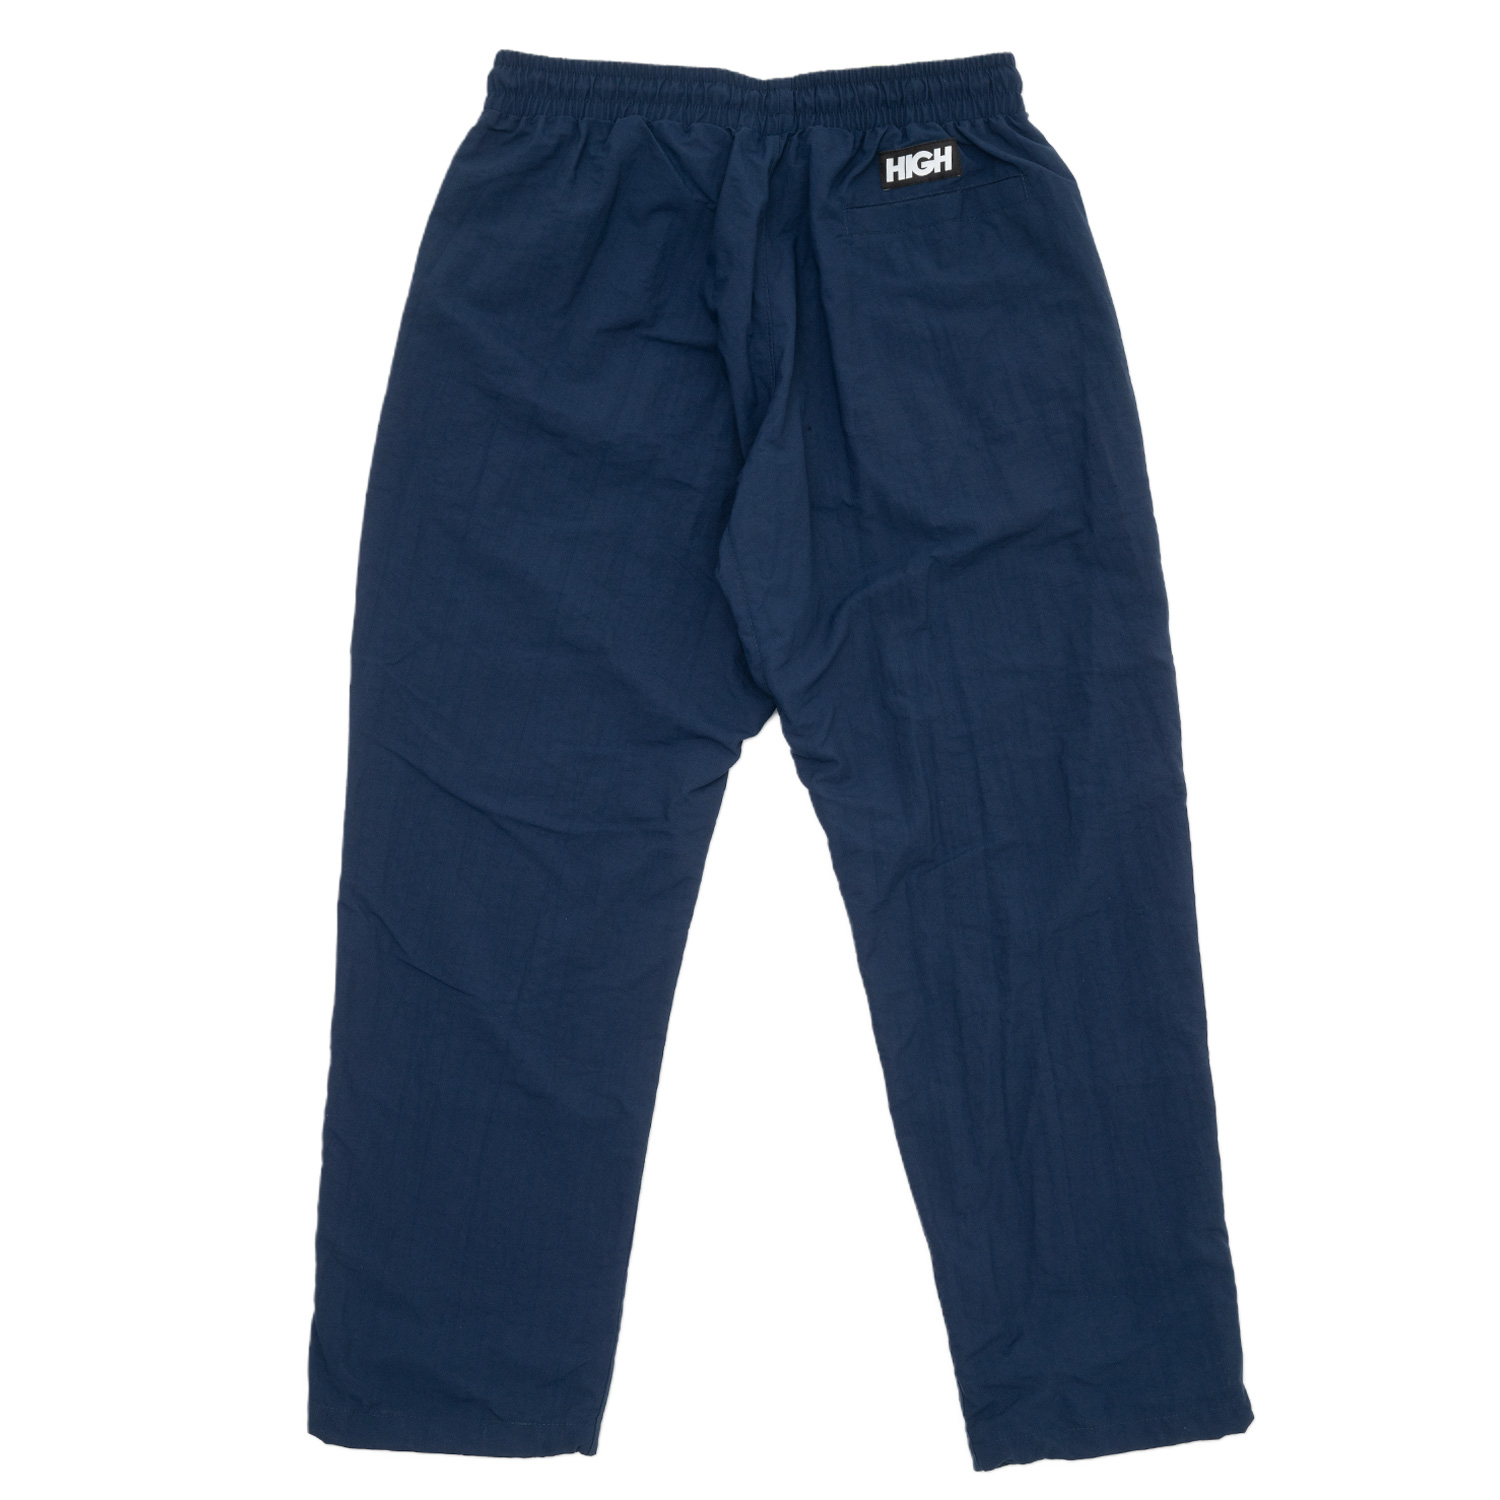 Track_Pants_Diagonal_Navy